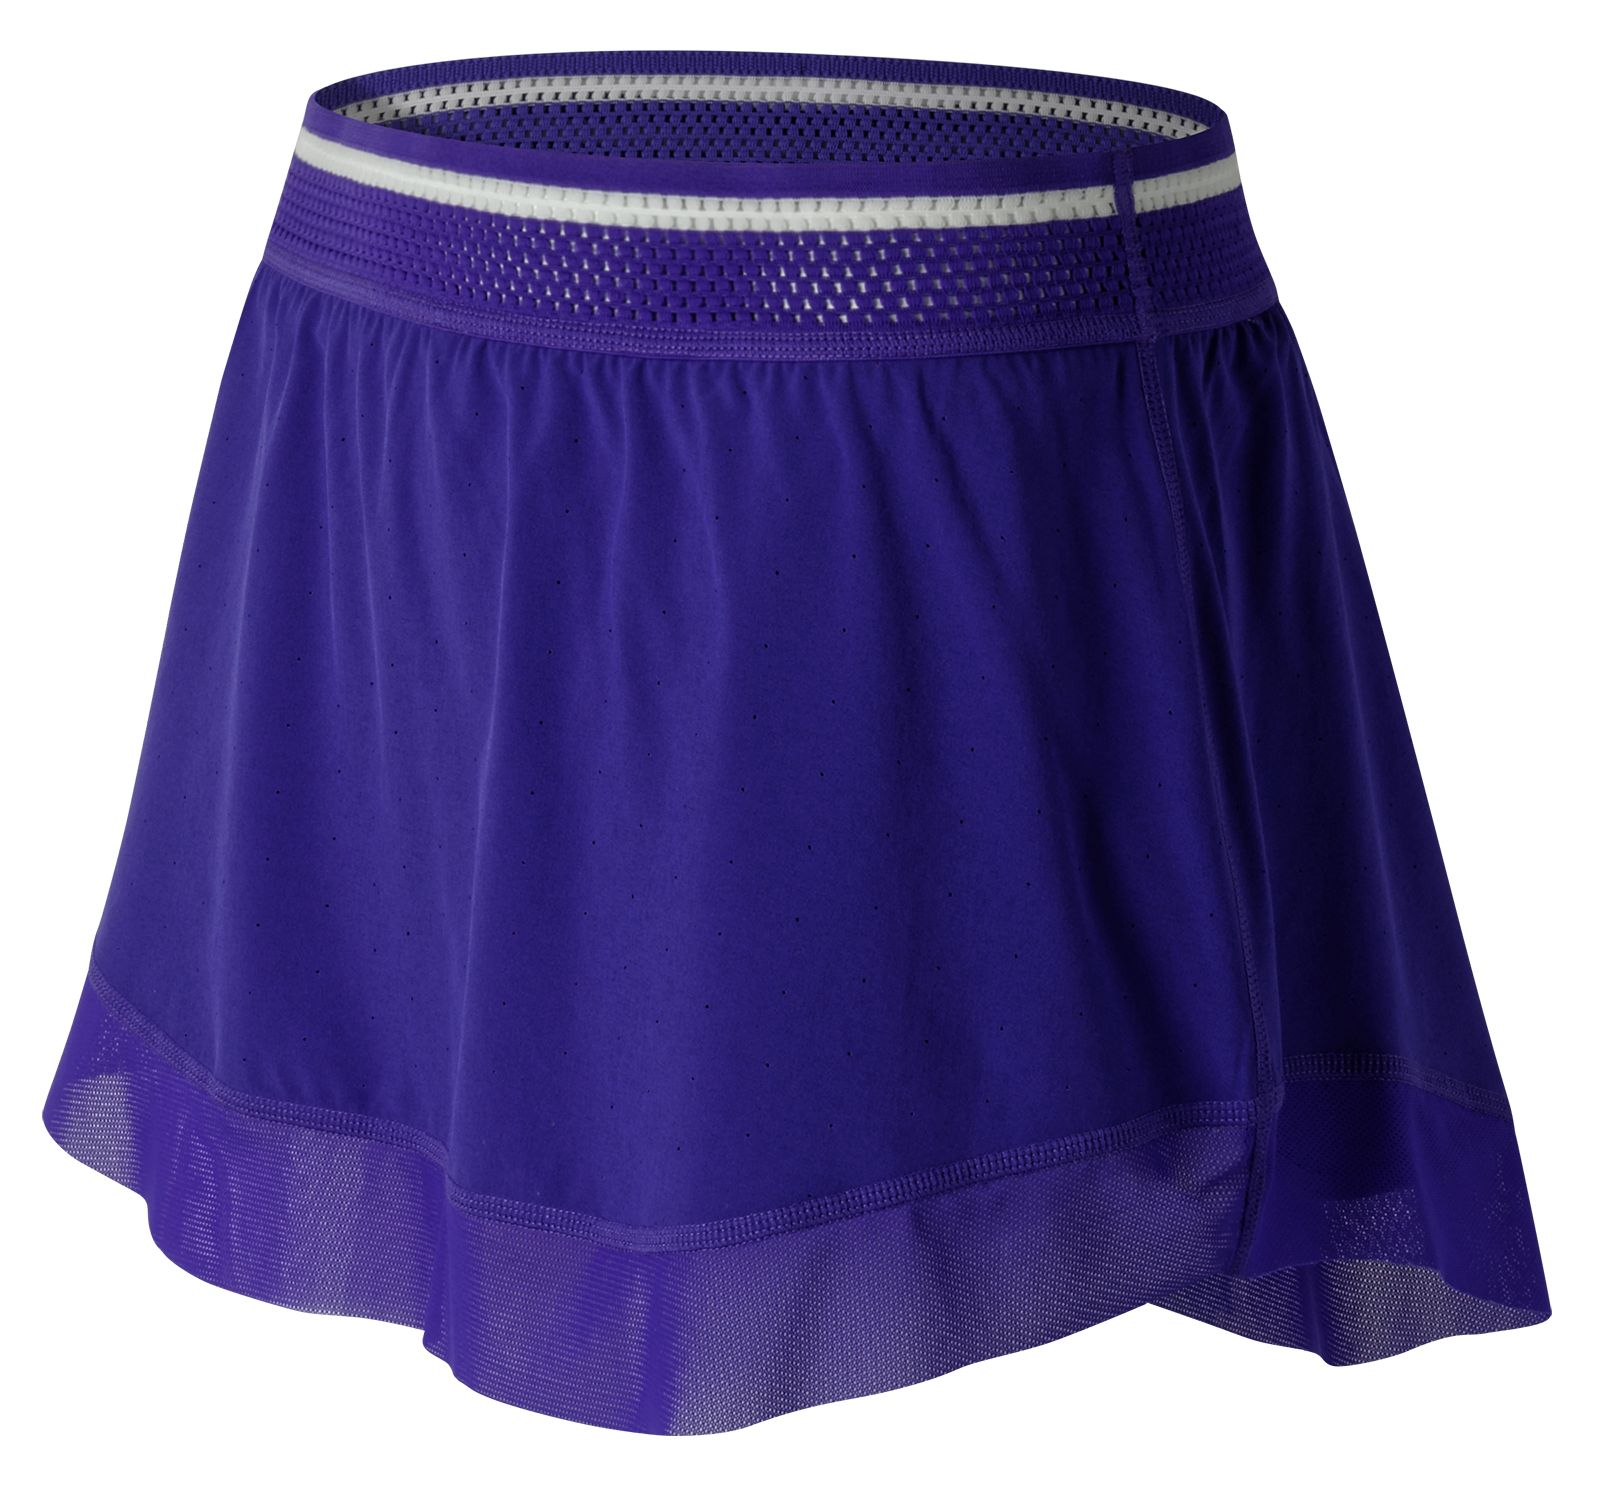 New Balance : Tournament Skort : Women's Apparel : WK61406SSL